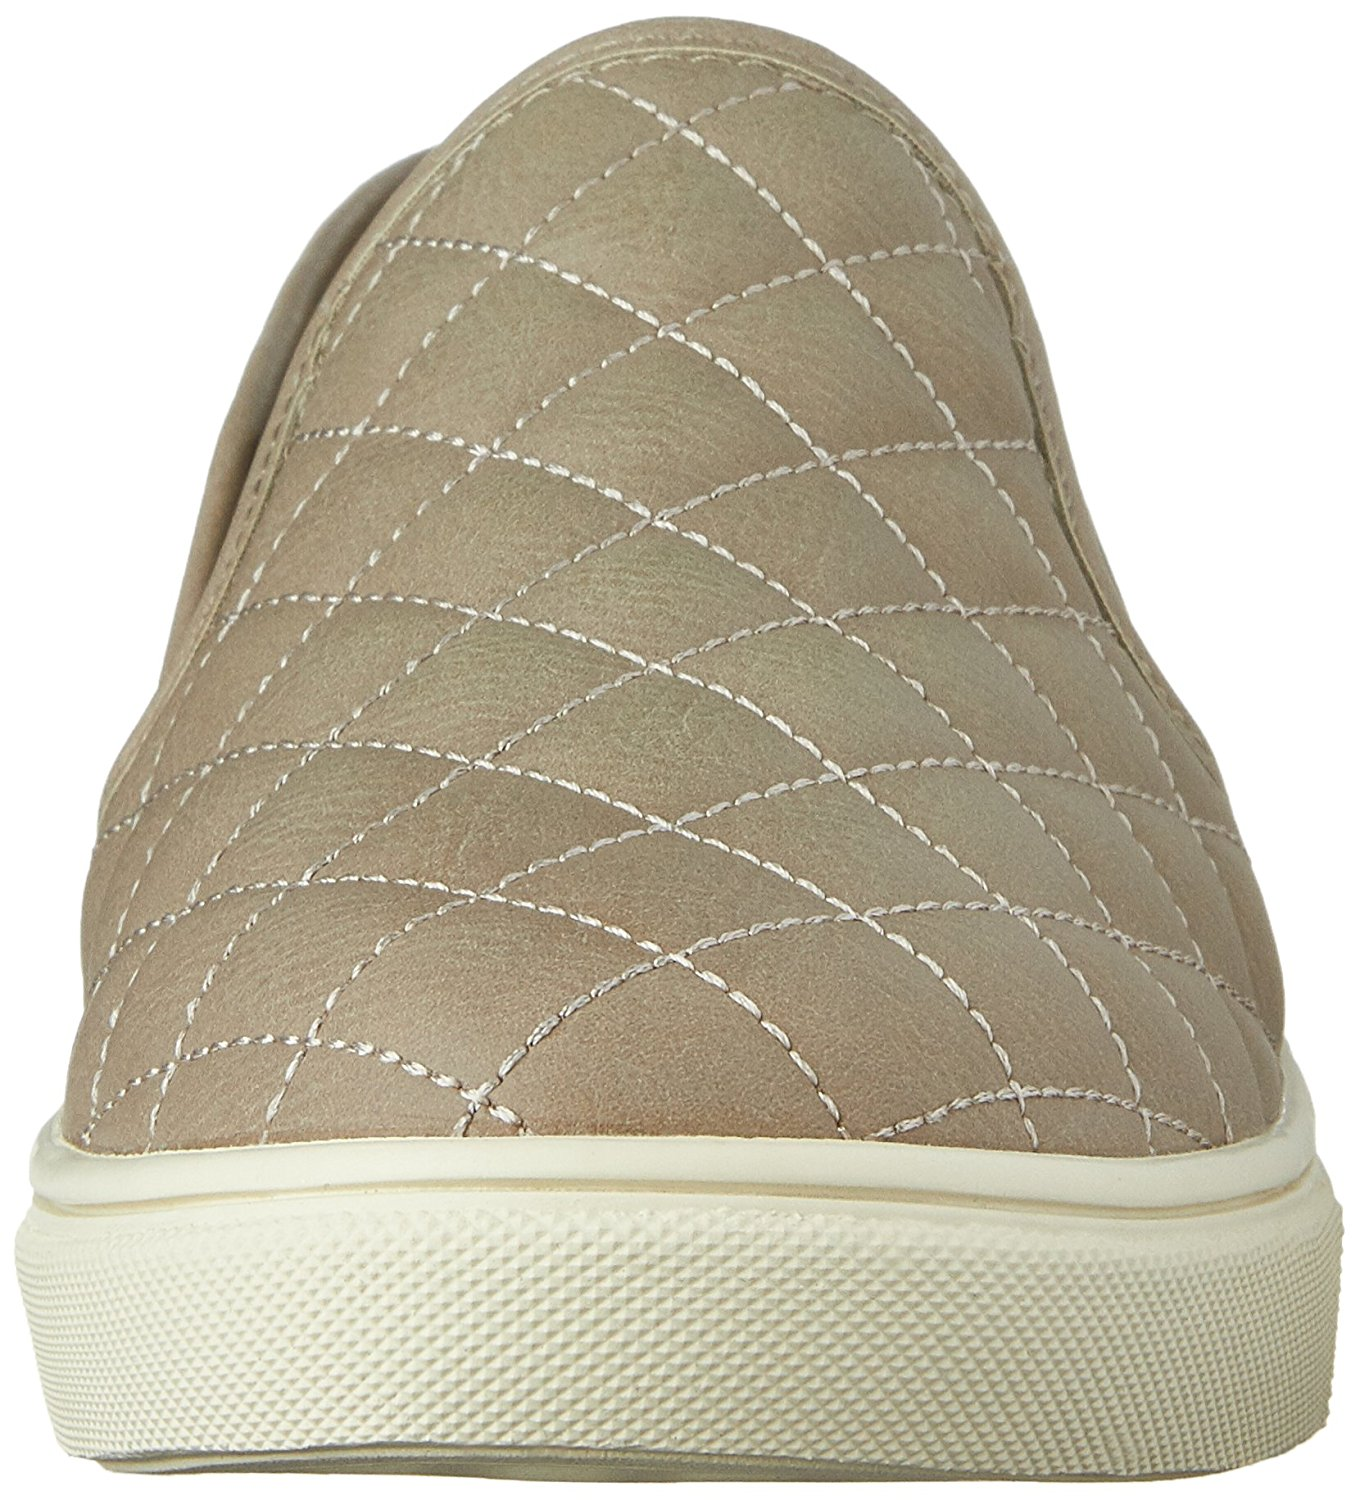 03a18e944de Steve Madden Womens Ecentrcq Low Top Slip On Fashion Sneakers